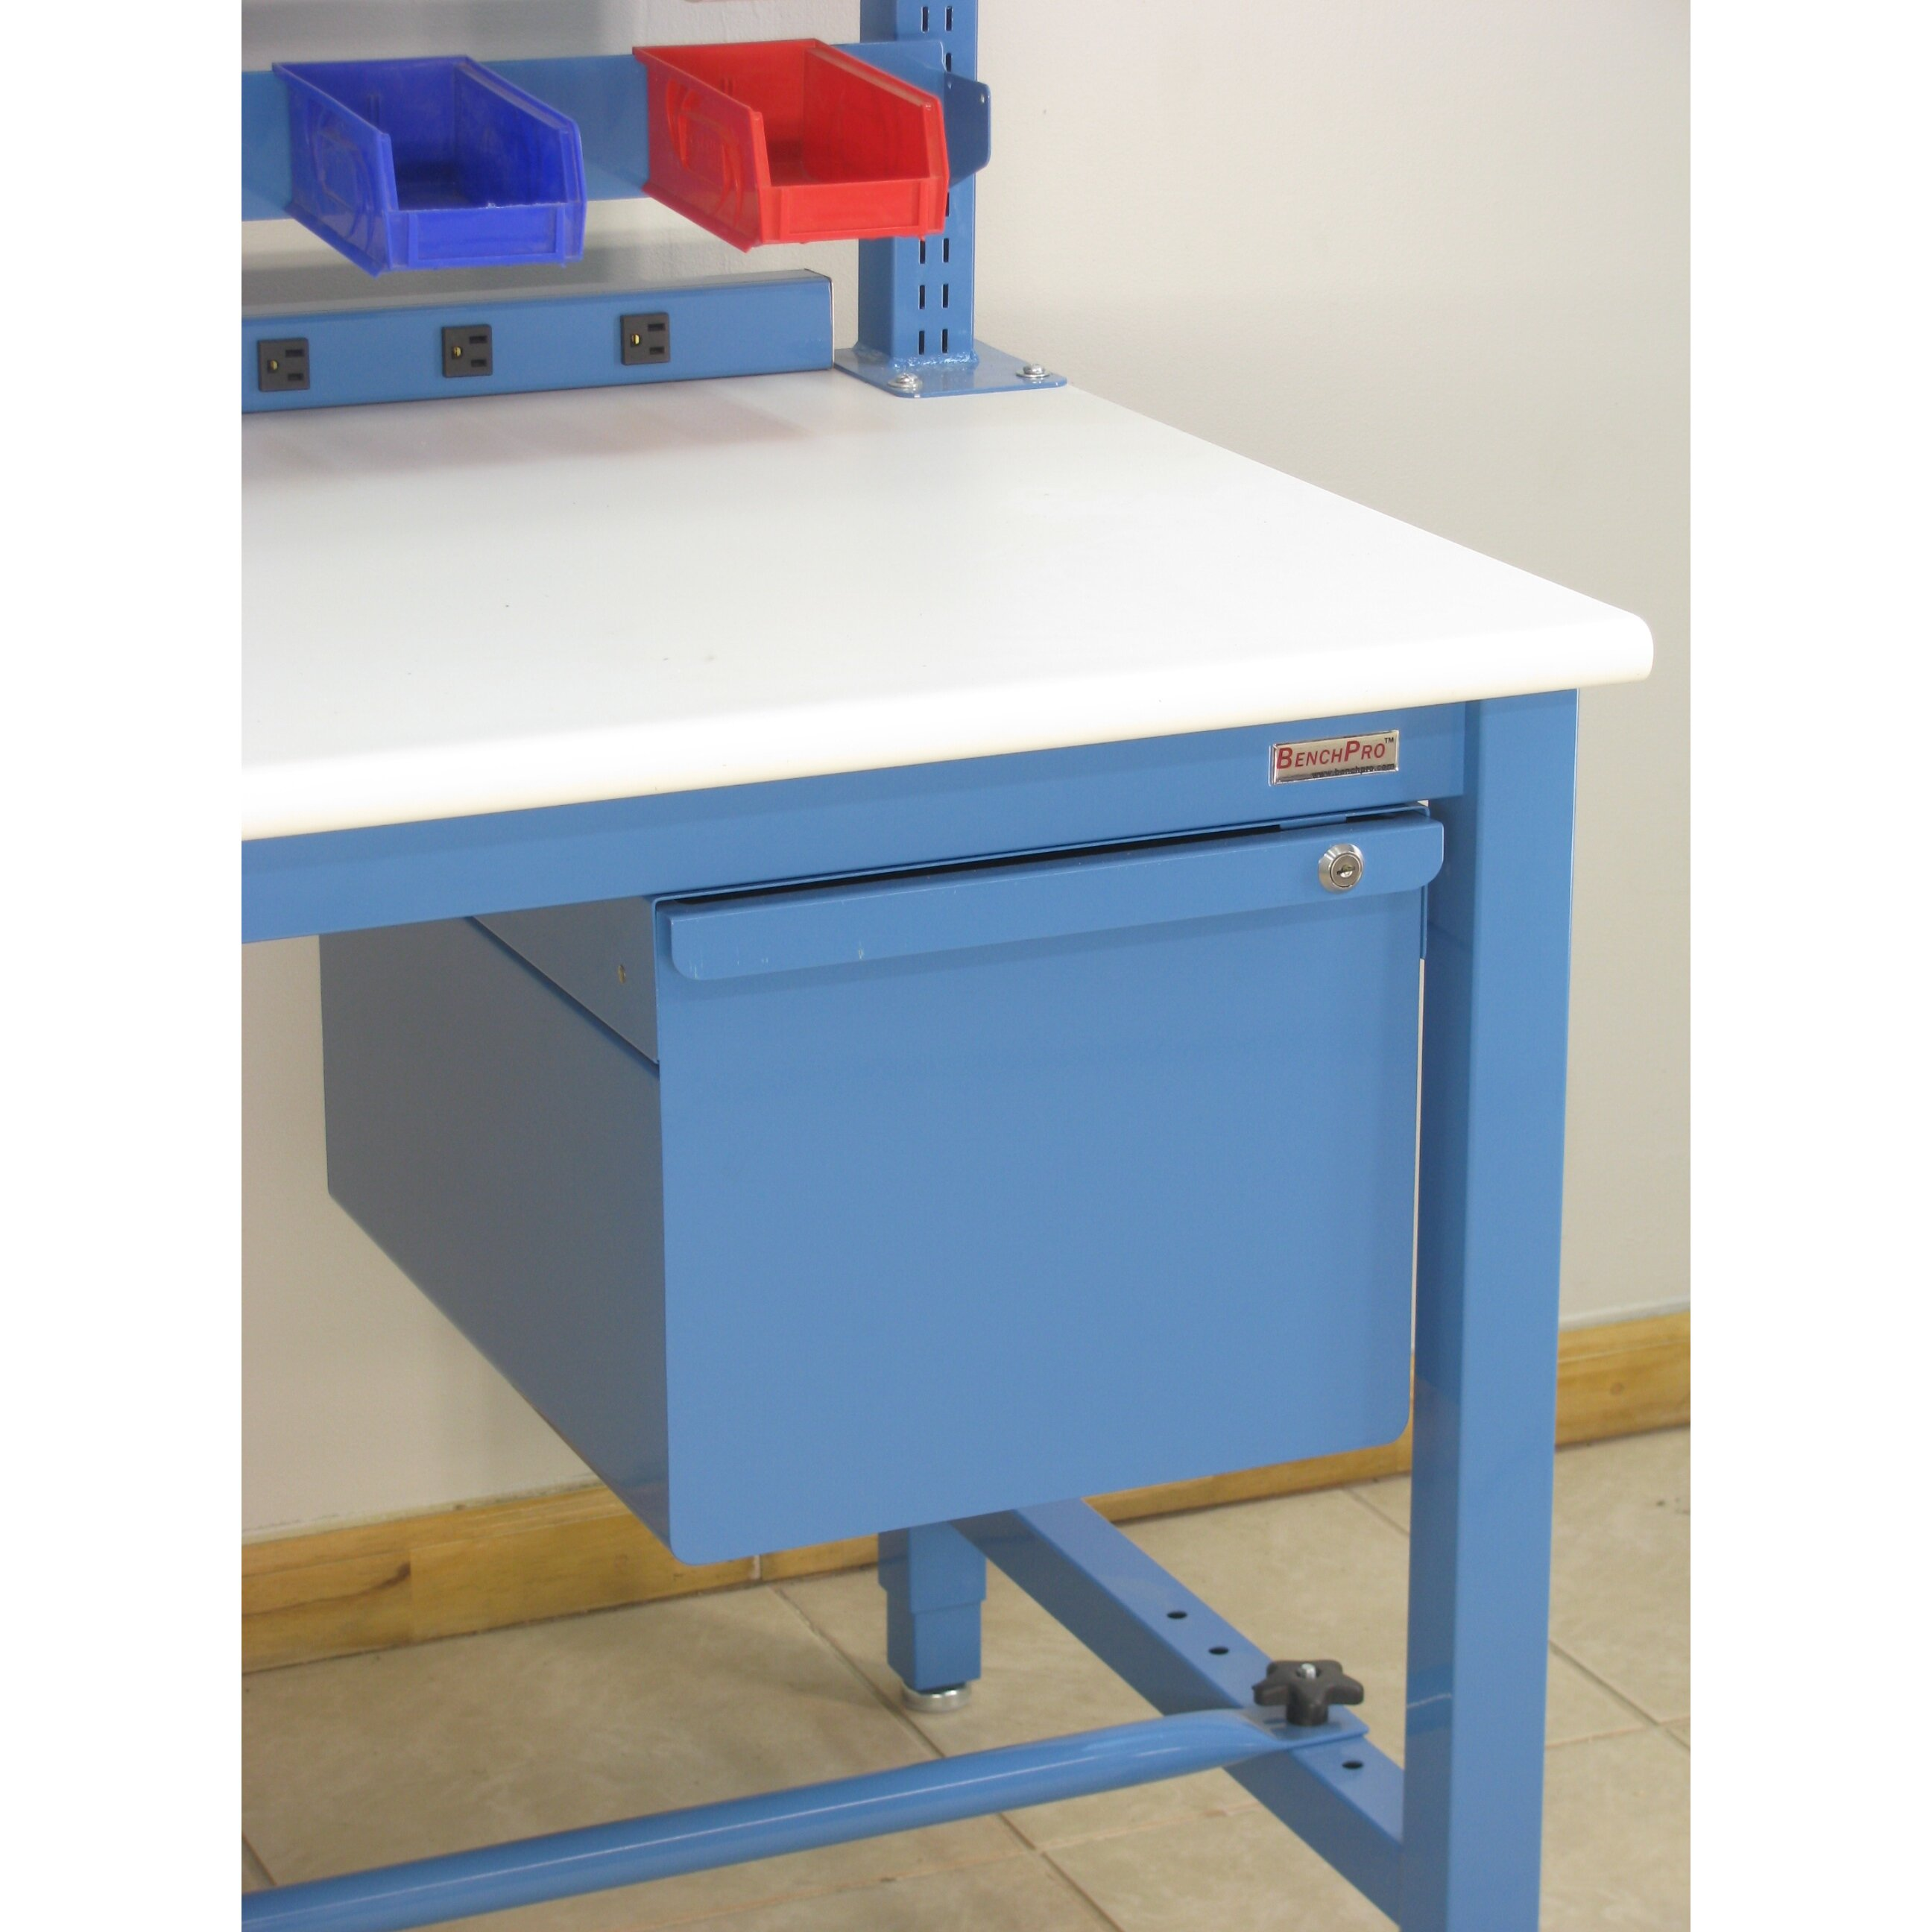 Bench Pro Kennedy Class 100 Cleanroom Formica Laminate Top Workbench Wayfair